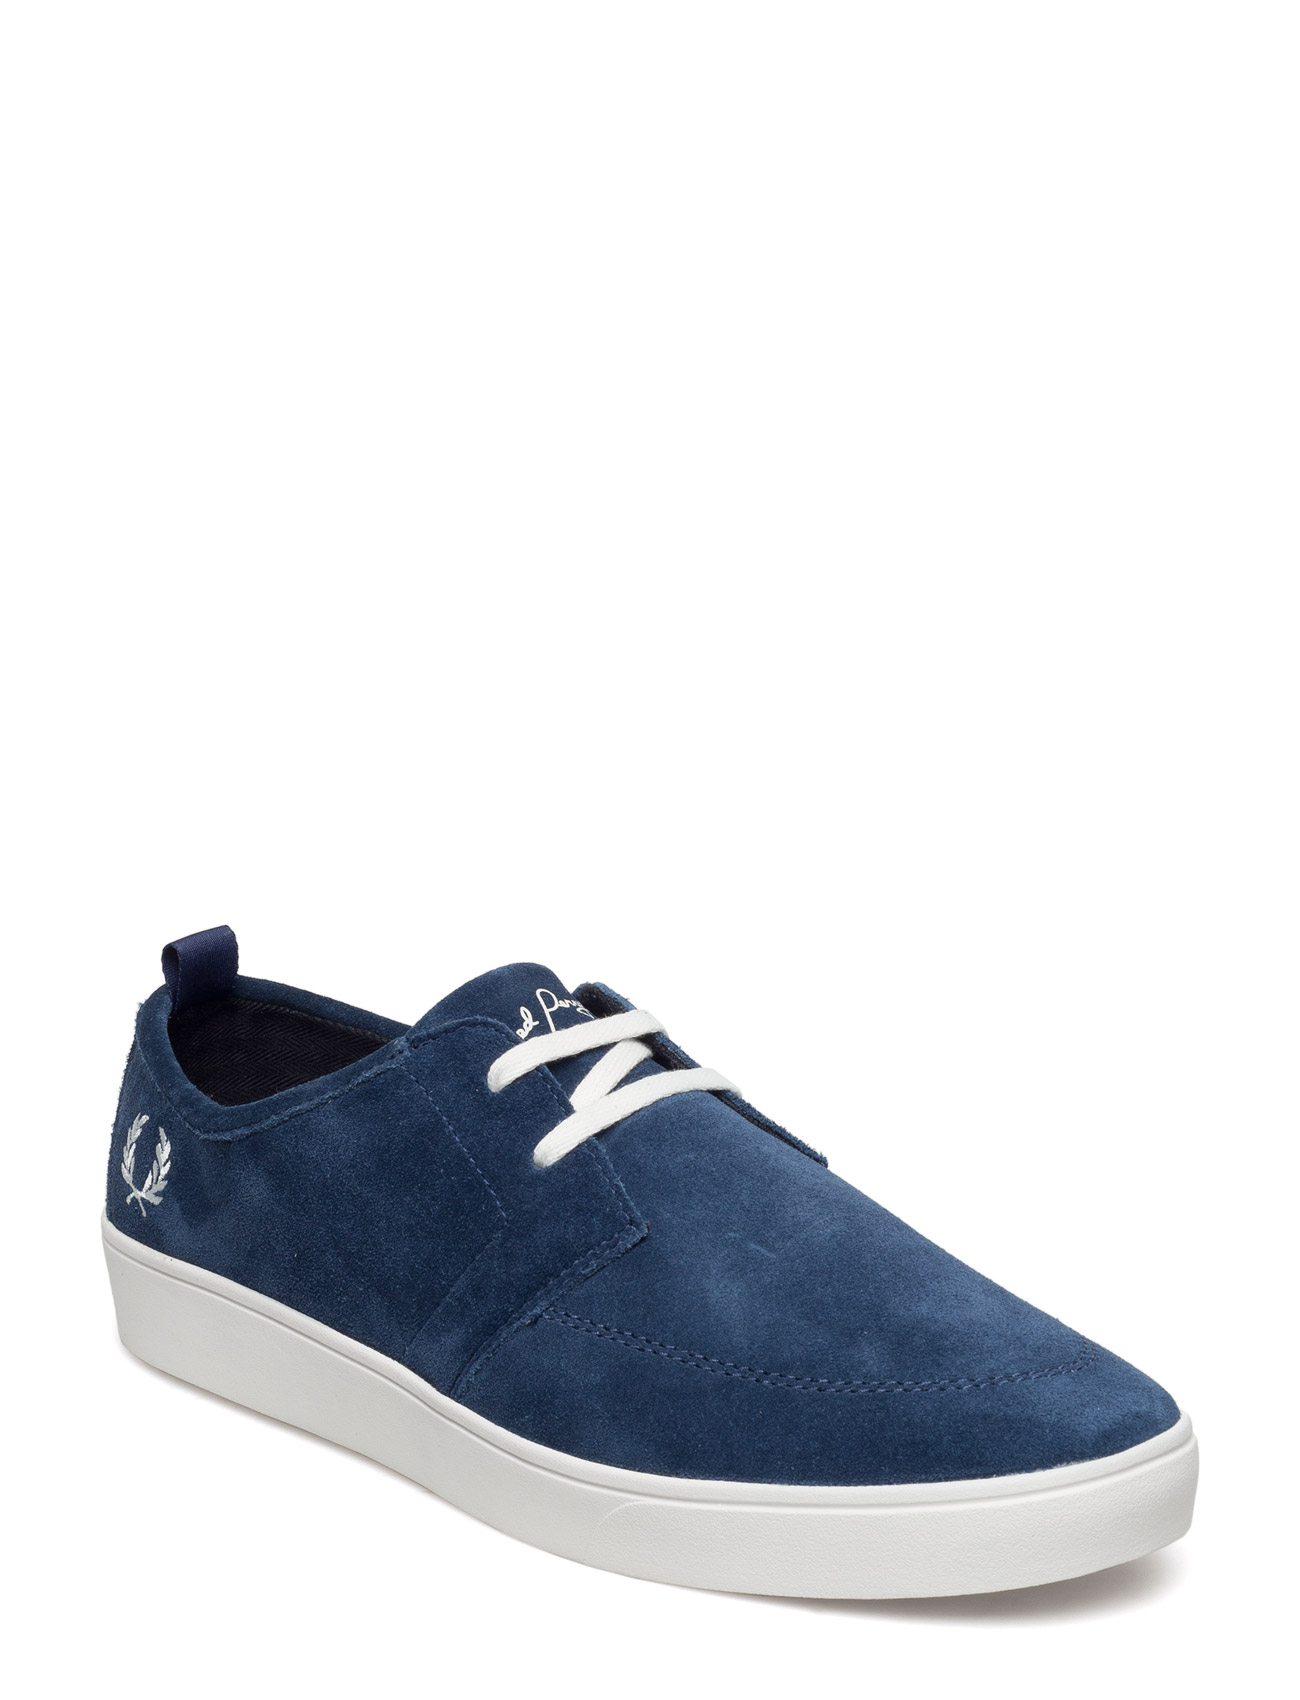 Shields Suede Fred Perry Sneakers til Herrer i